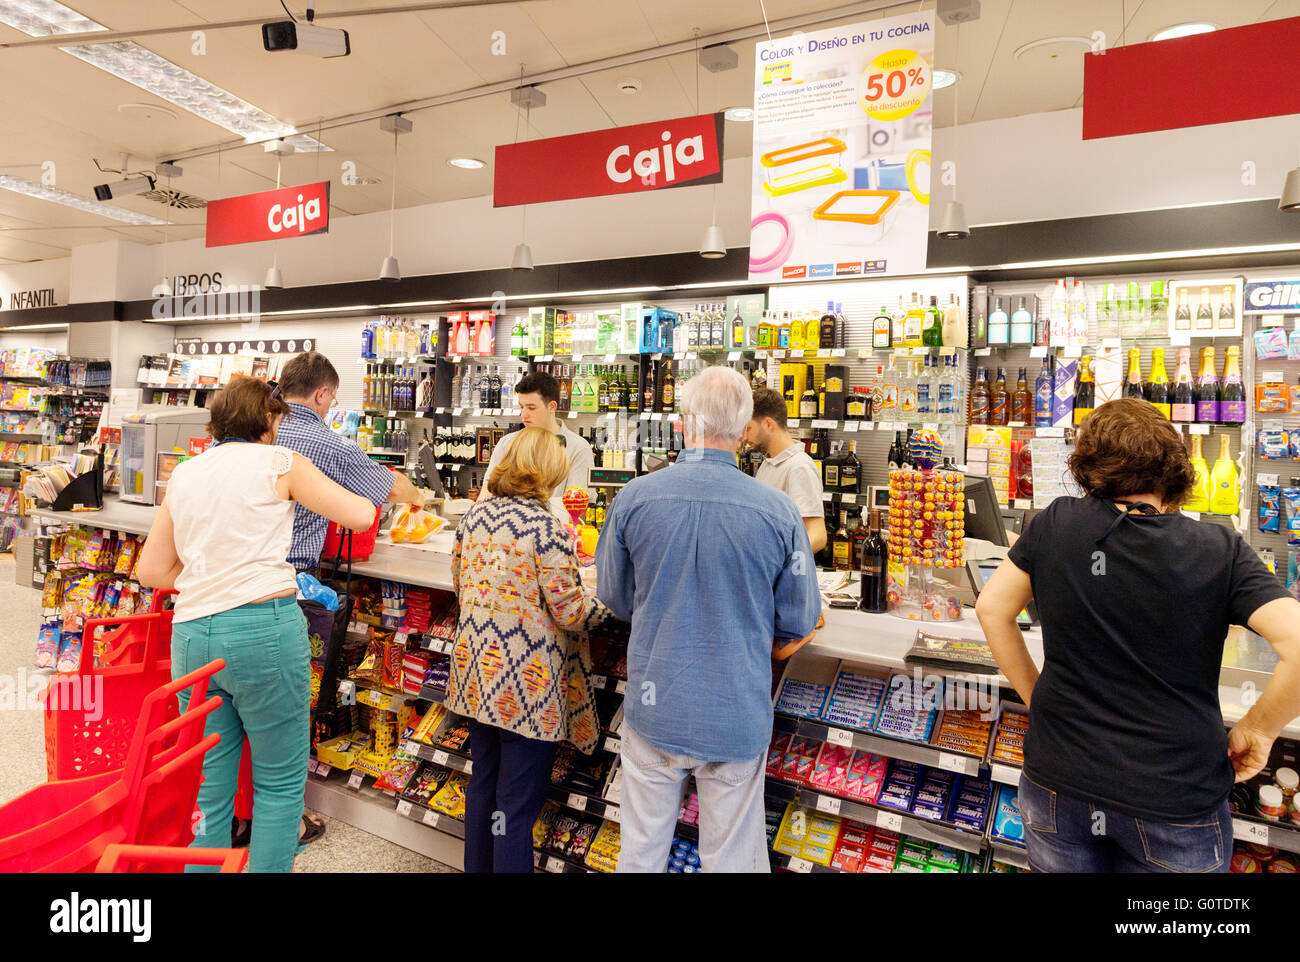 Cash Tills Stock Photos & Cash Tills Stock Images - Alamy